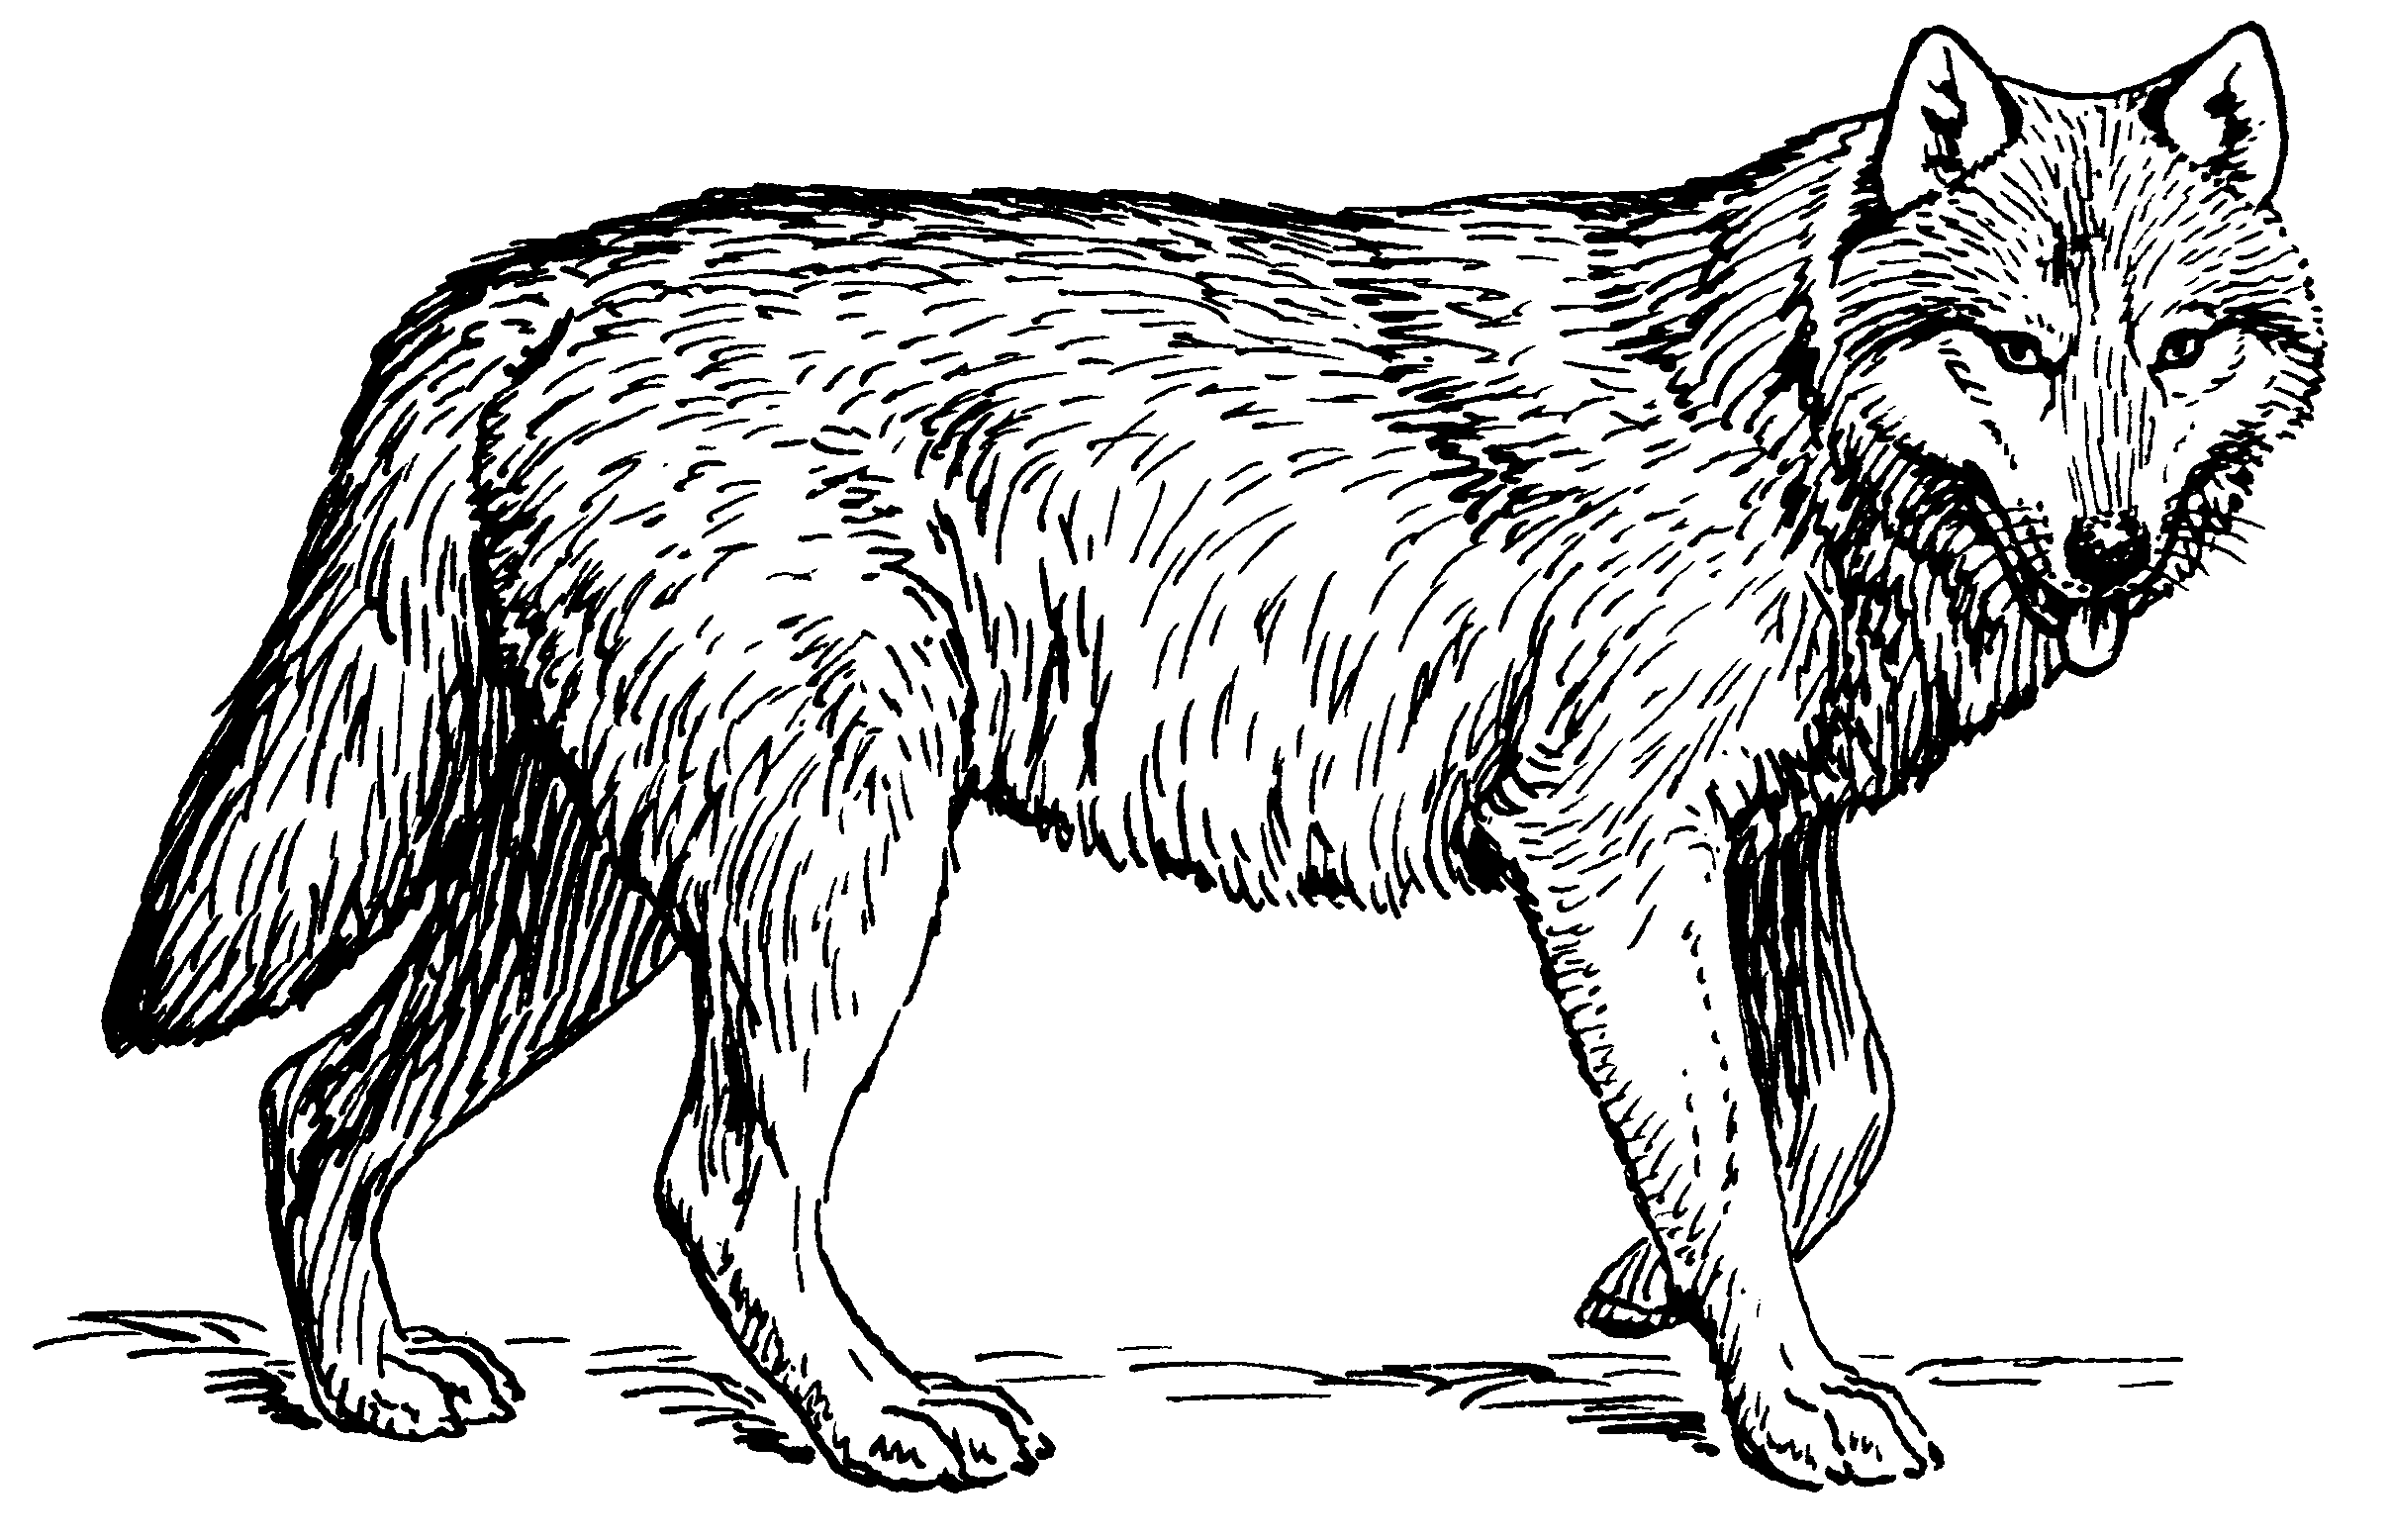 Wolf Drawings Png Free Wolf Drawings Png Transparent Images 86119 Pngio